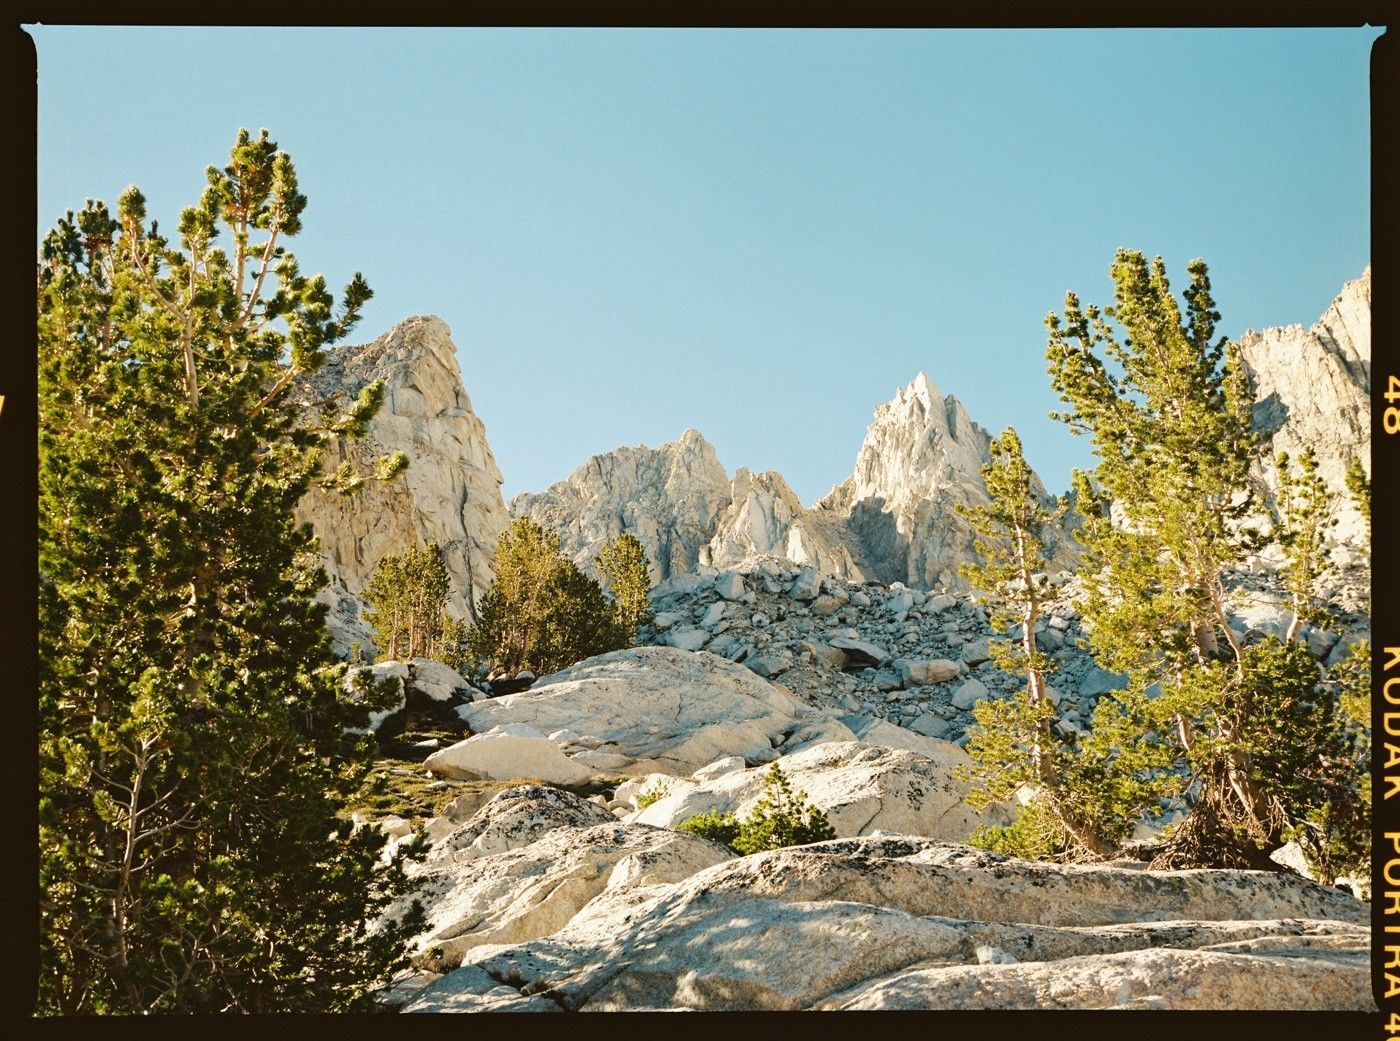 FRAME 11 — Backcountry time! Nothing like high alpine scenes. I loved the way the trees framed the towering peaks.